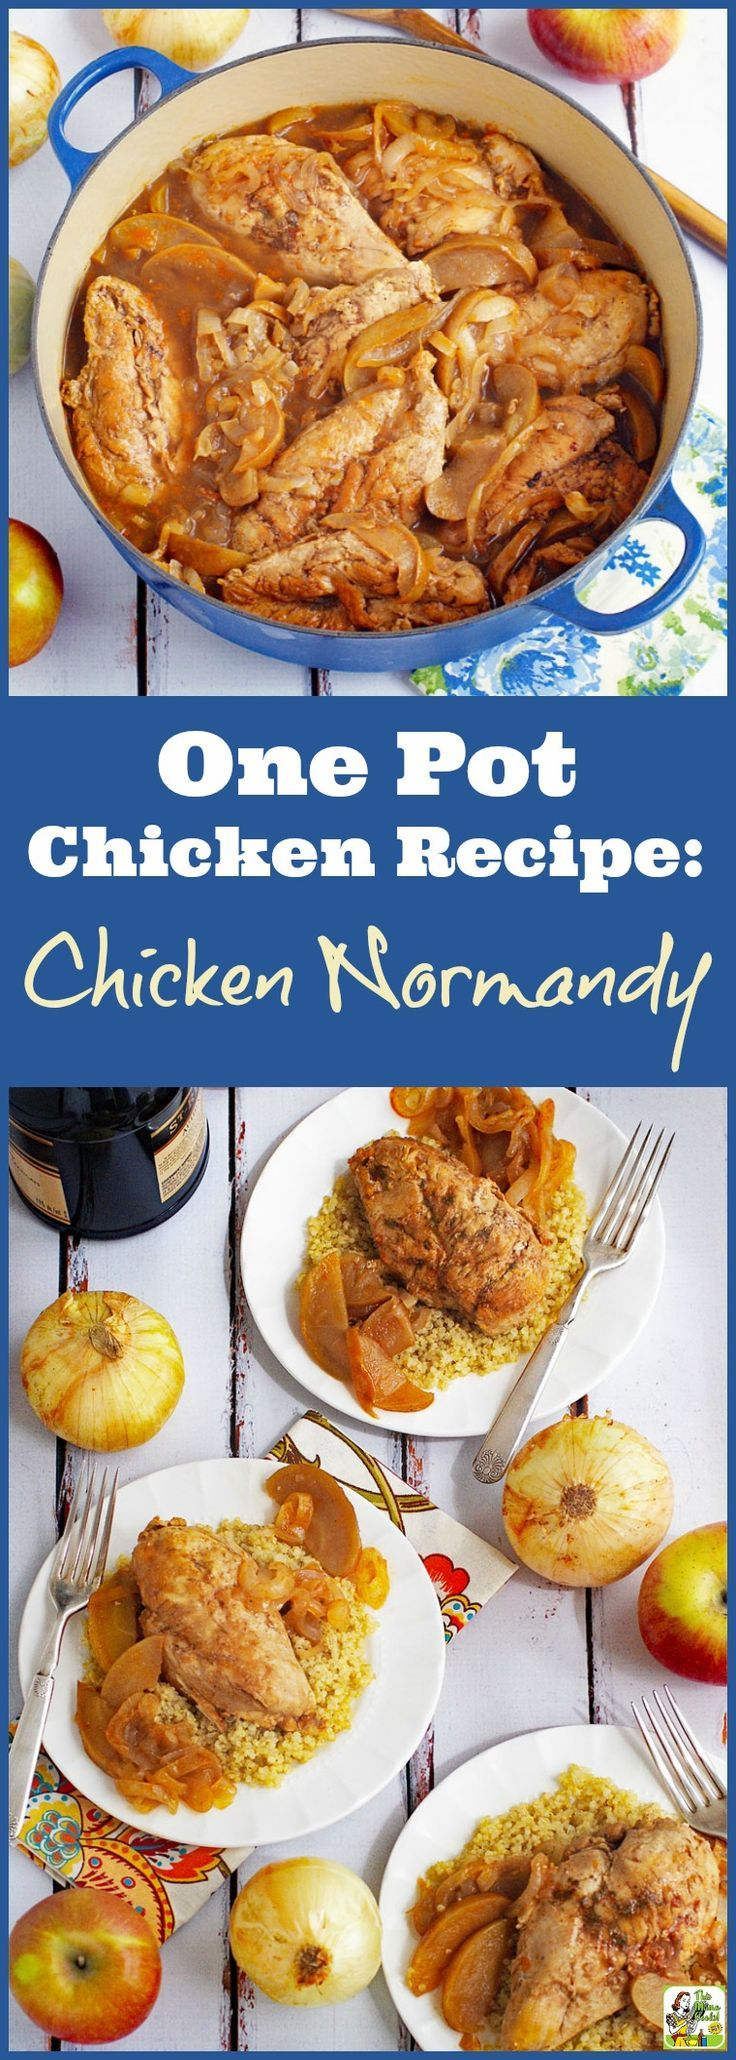 Chicken Normandy à la Marie-Celine. Click to get this healthy and easy one pot chicken recipe made with apples, onions and brandy. Serve on rice, quinoa, gluten free noodles, or wild rice. Naturally gluten free.